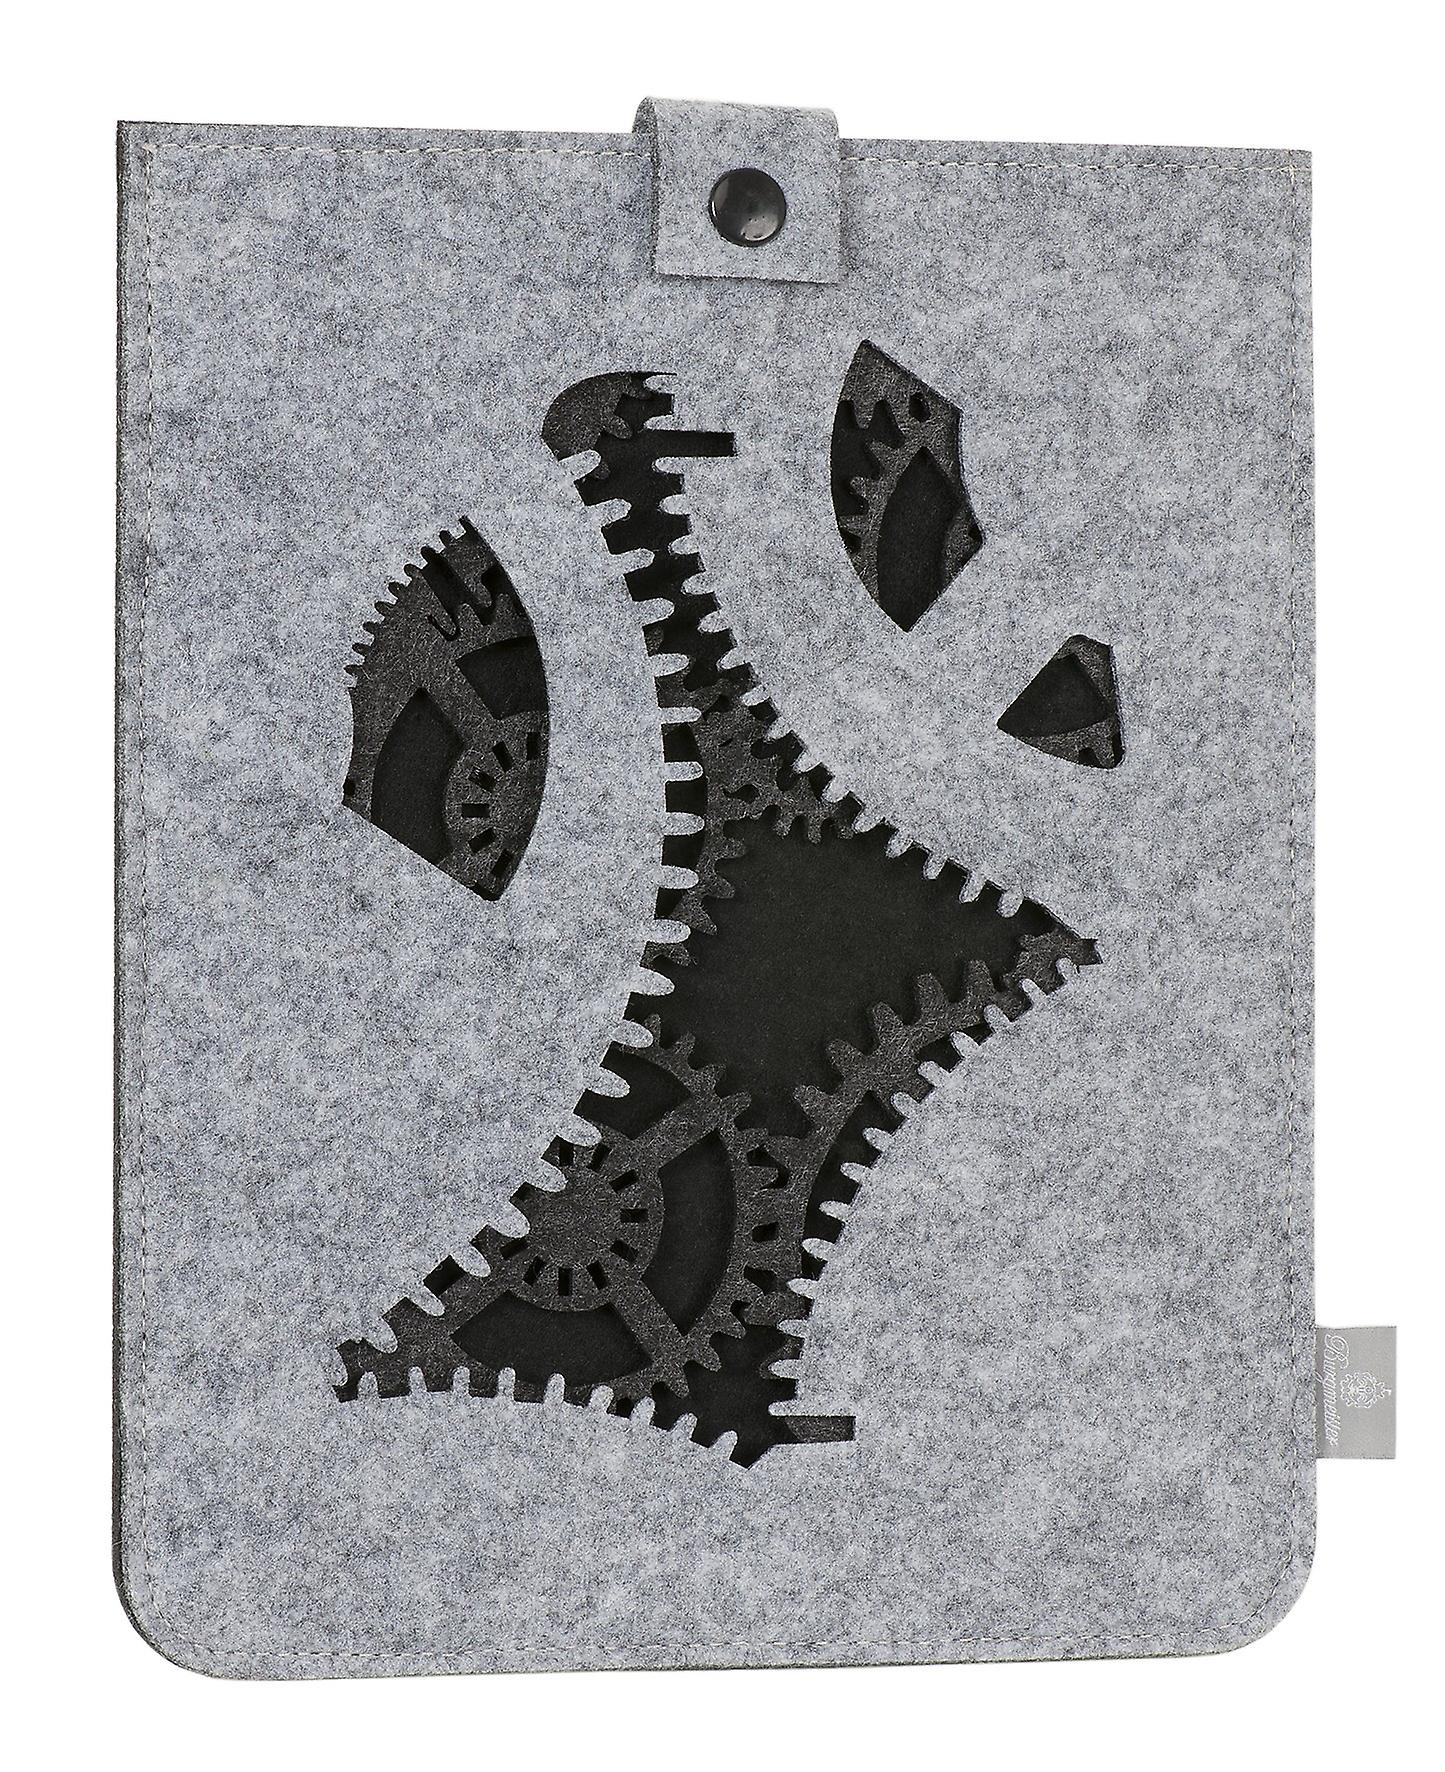 Burgmeister ladies/gents Ipad-/Tablet PC cover felt, HBM3010-162